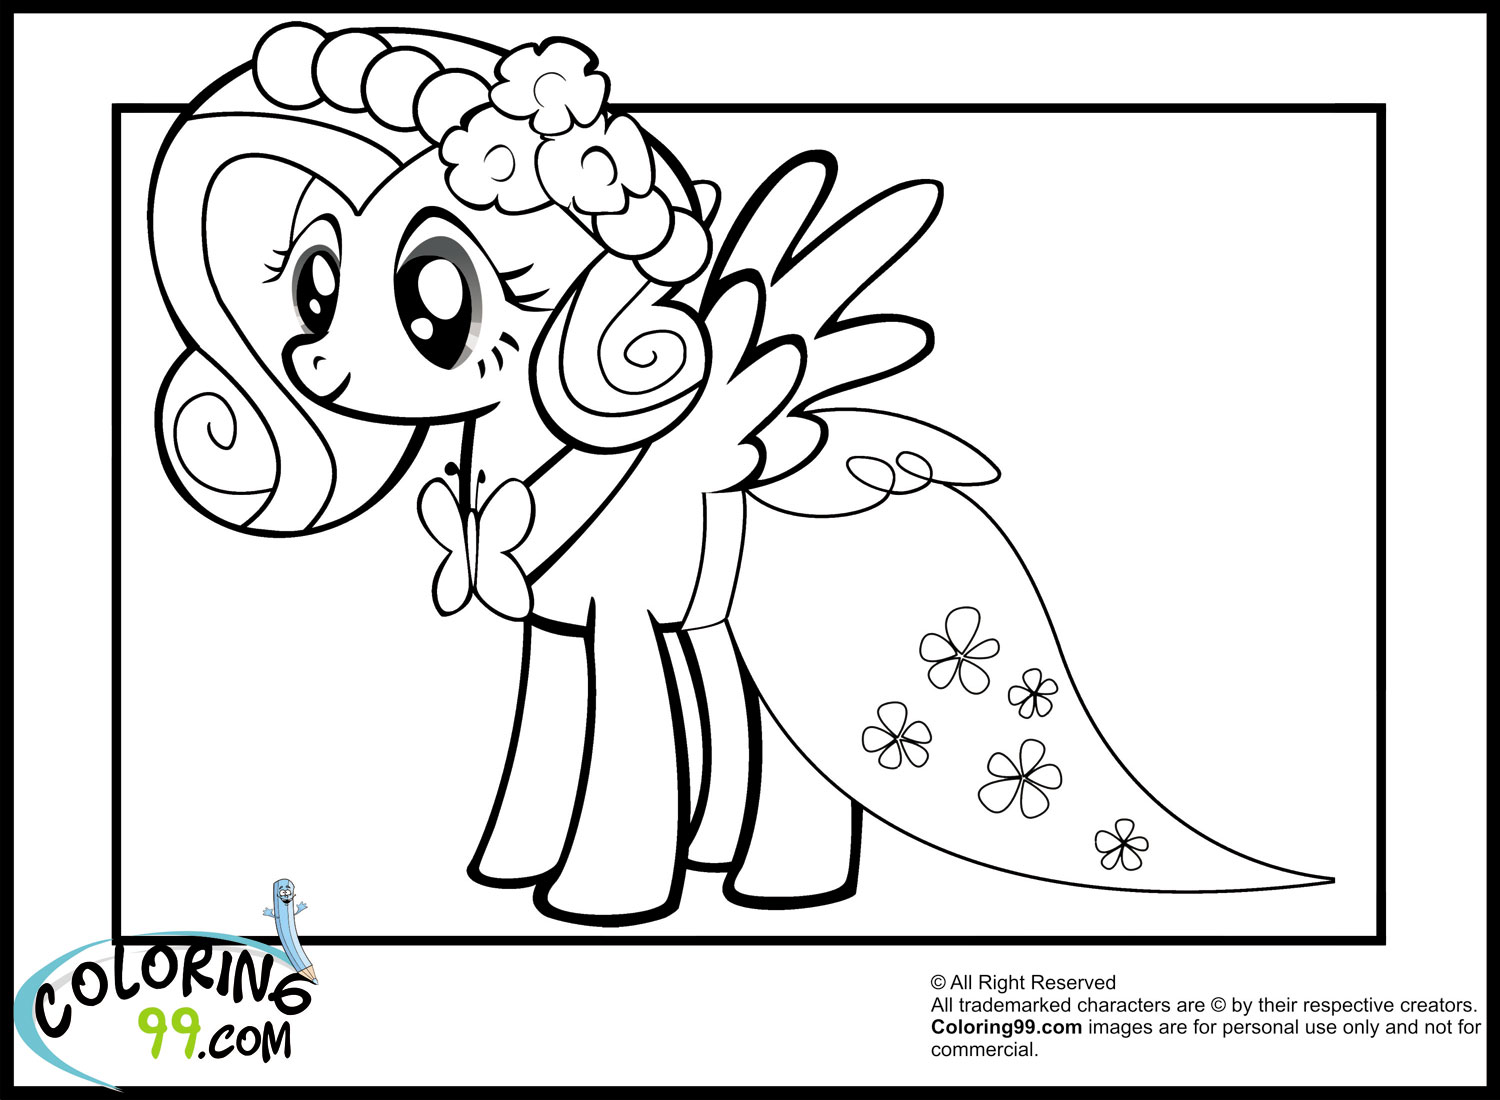 Equestria girls, MLP and Coloring pages on Pinterest